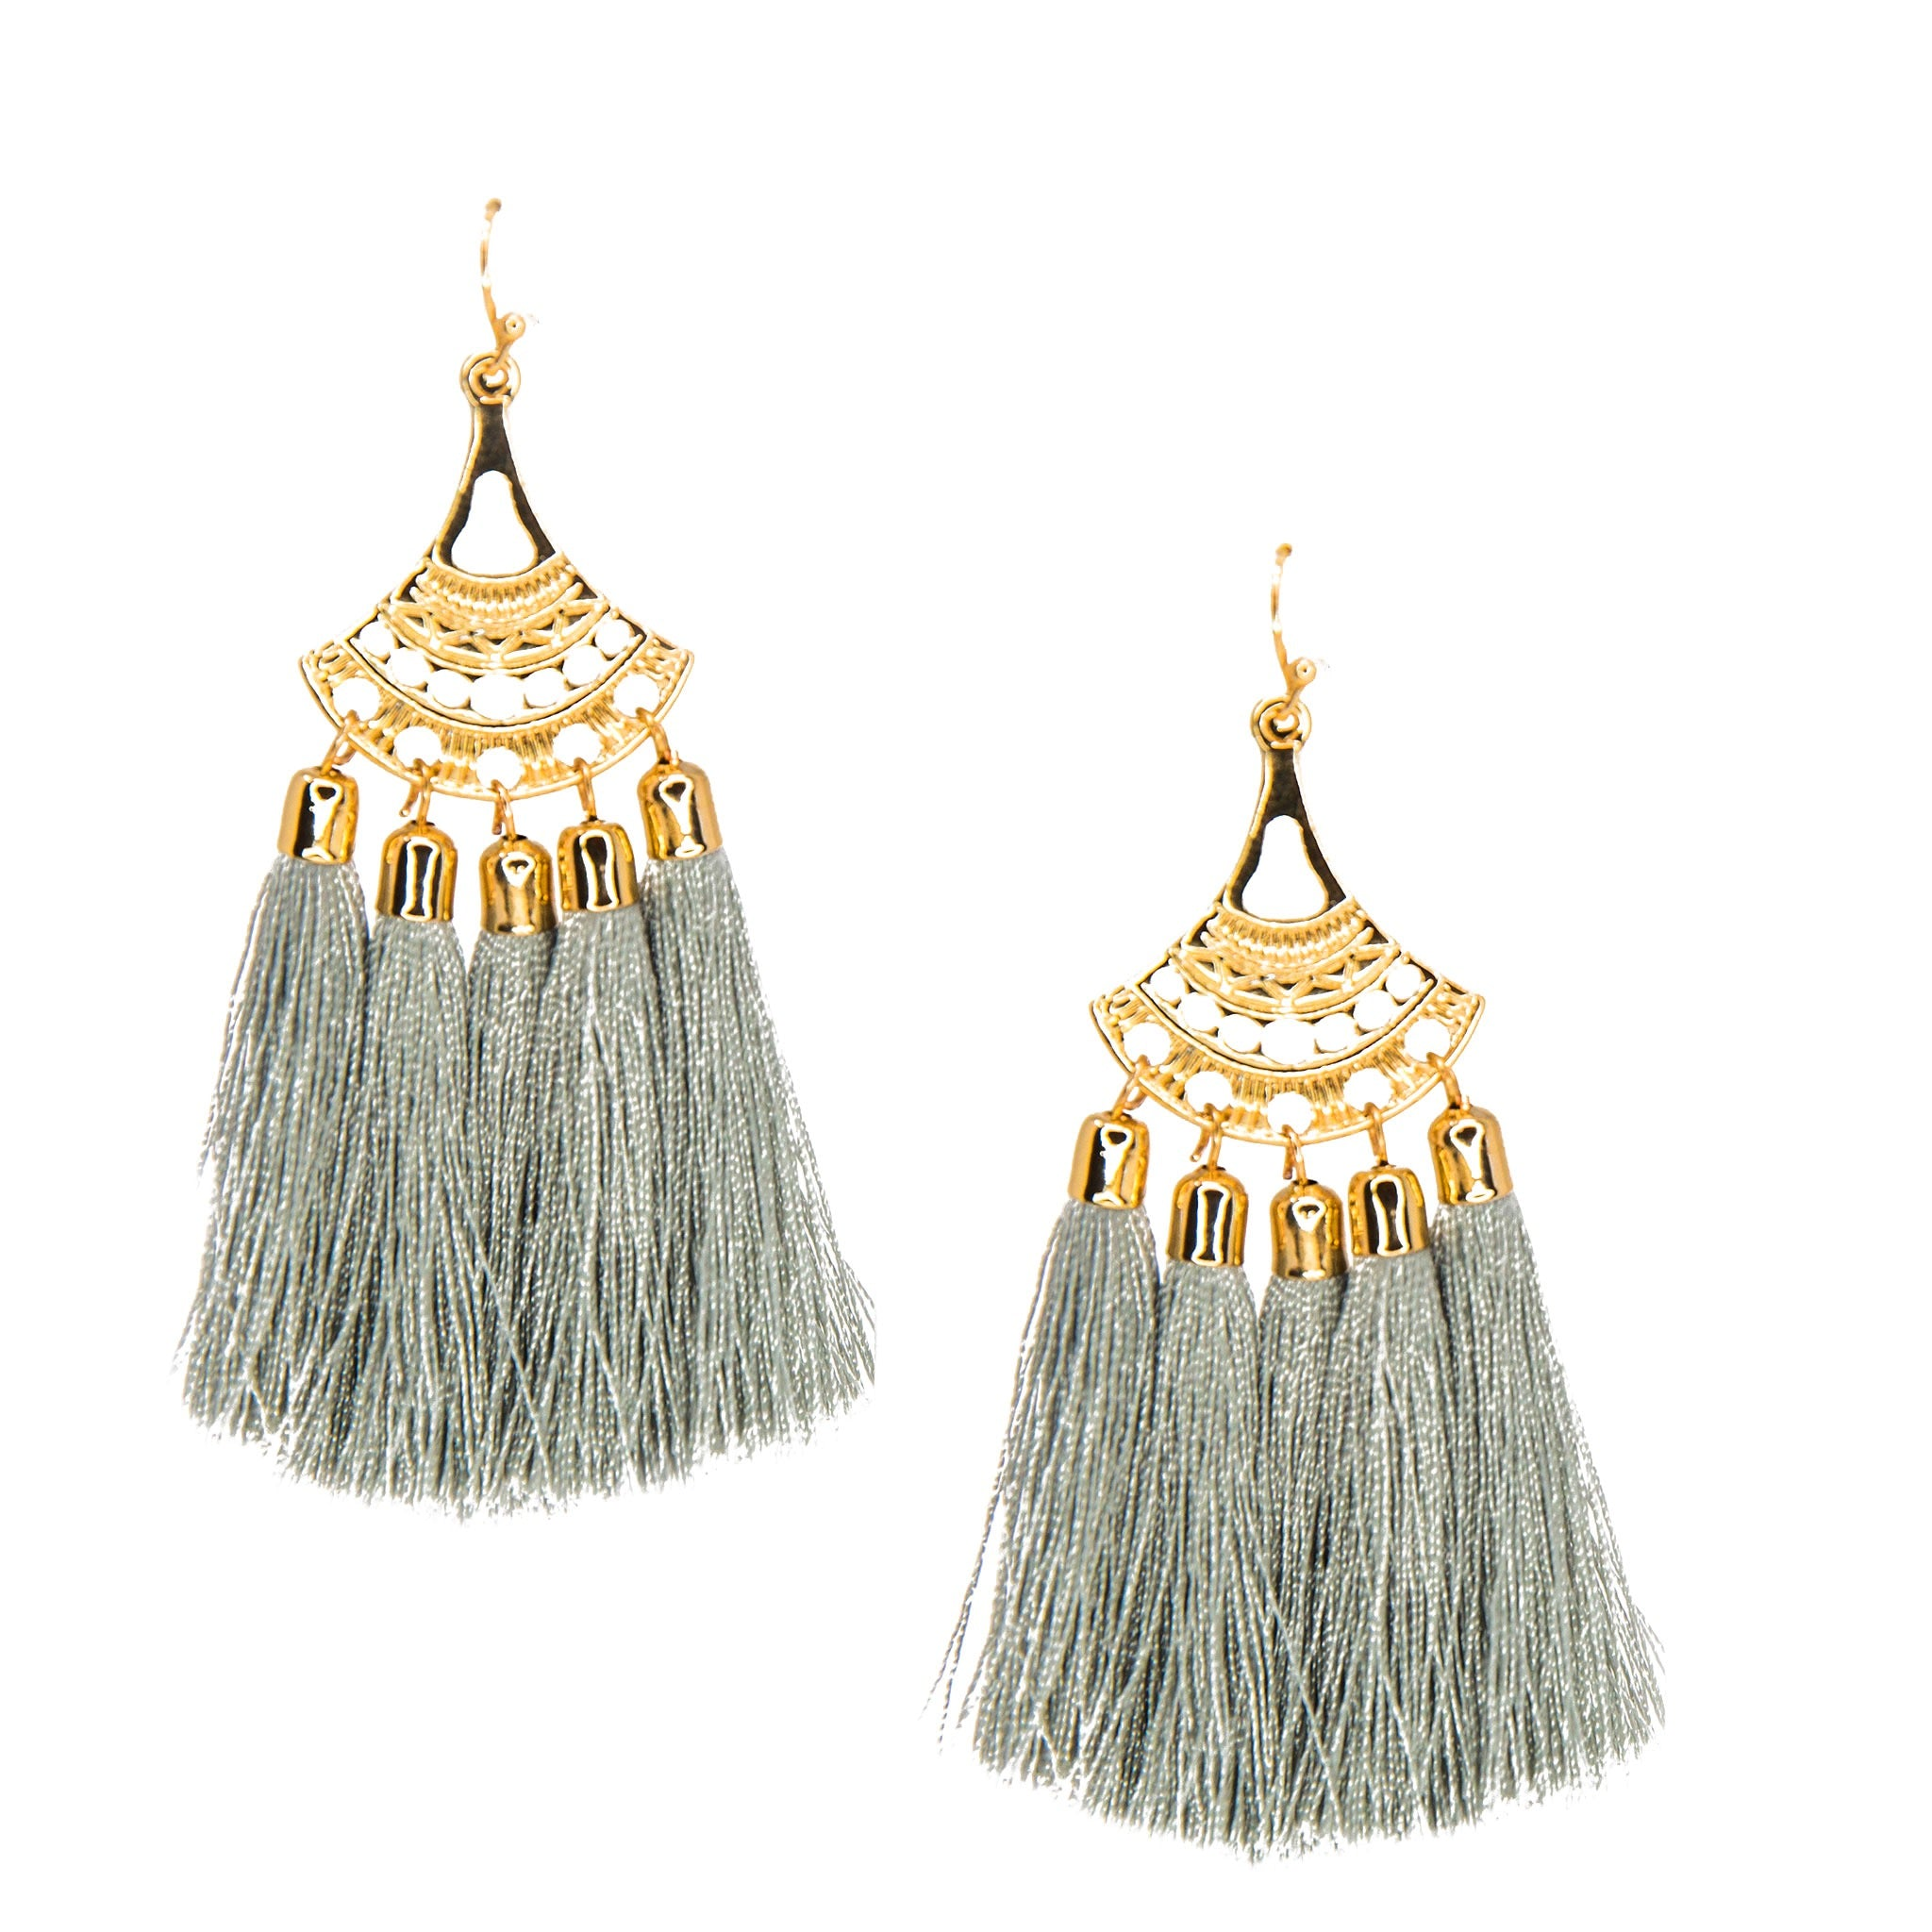 Buy tassel chandelier earrings shop tassel chandelier earrings jessica tassel chandelier earrings navy mozeypictures Image collections